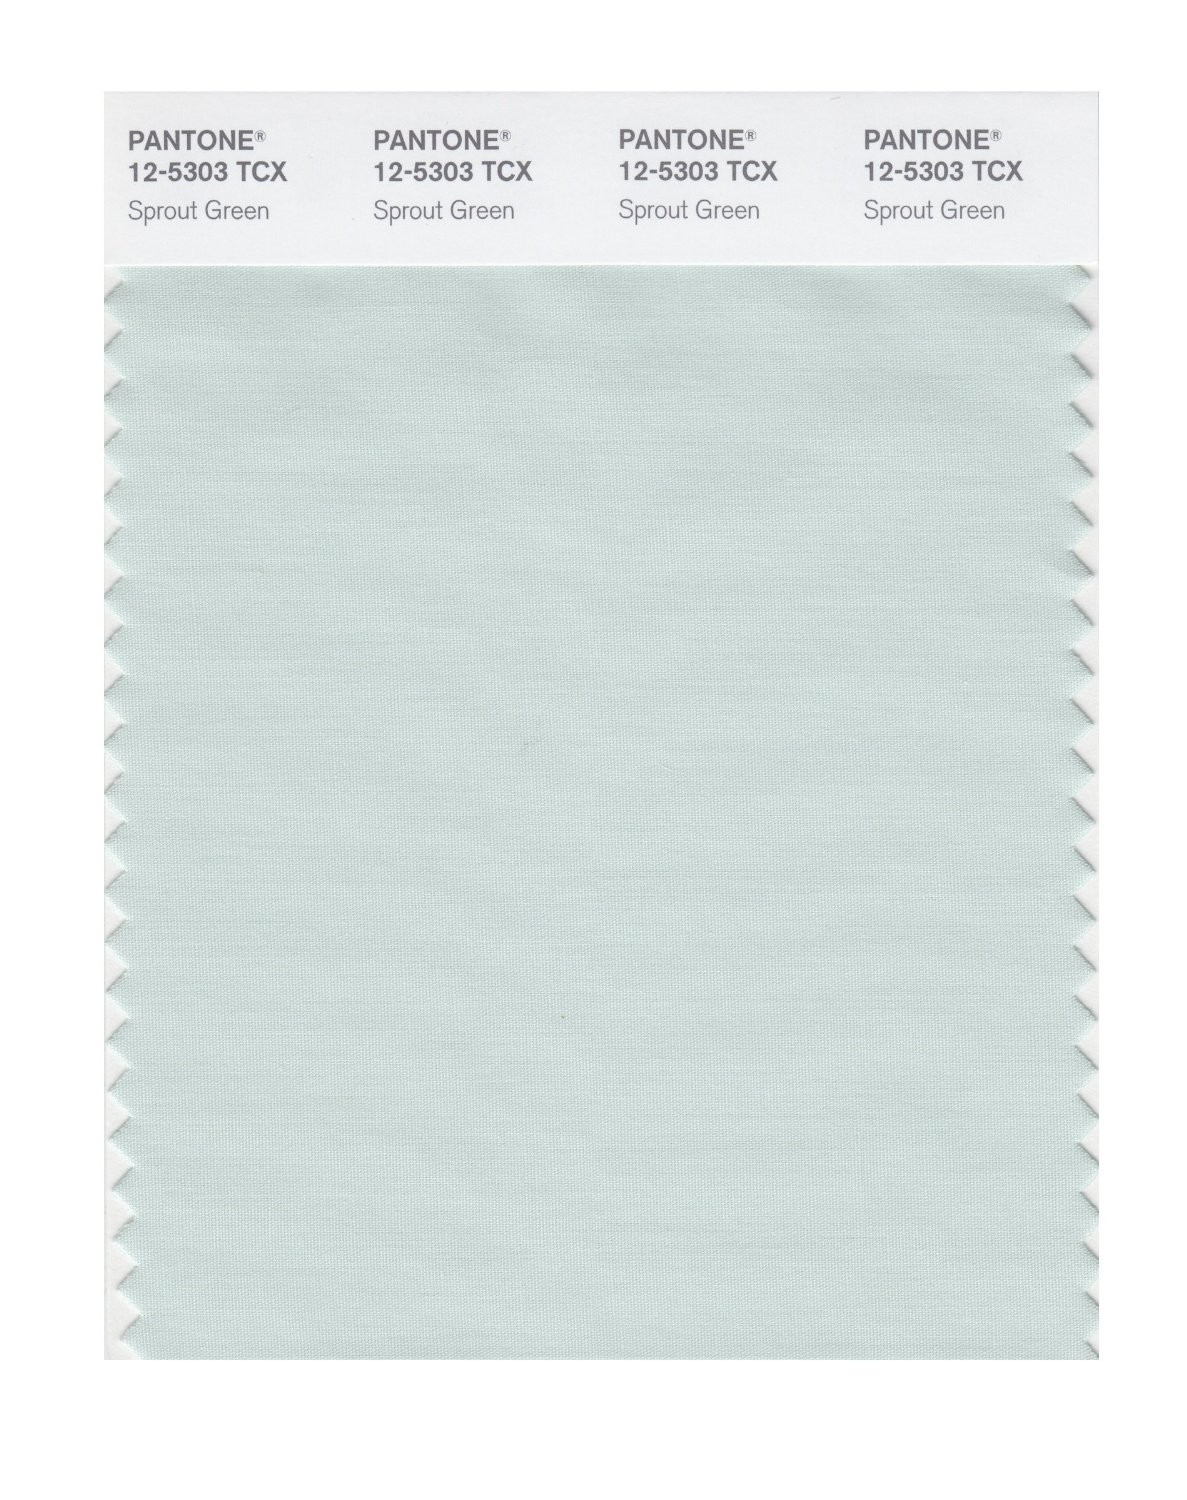 Pantone 12-5303 TCX Swatch Card Sprout Green